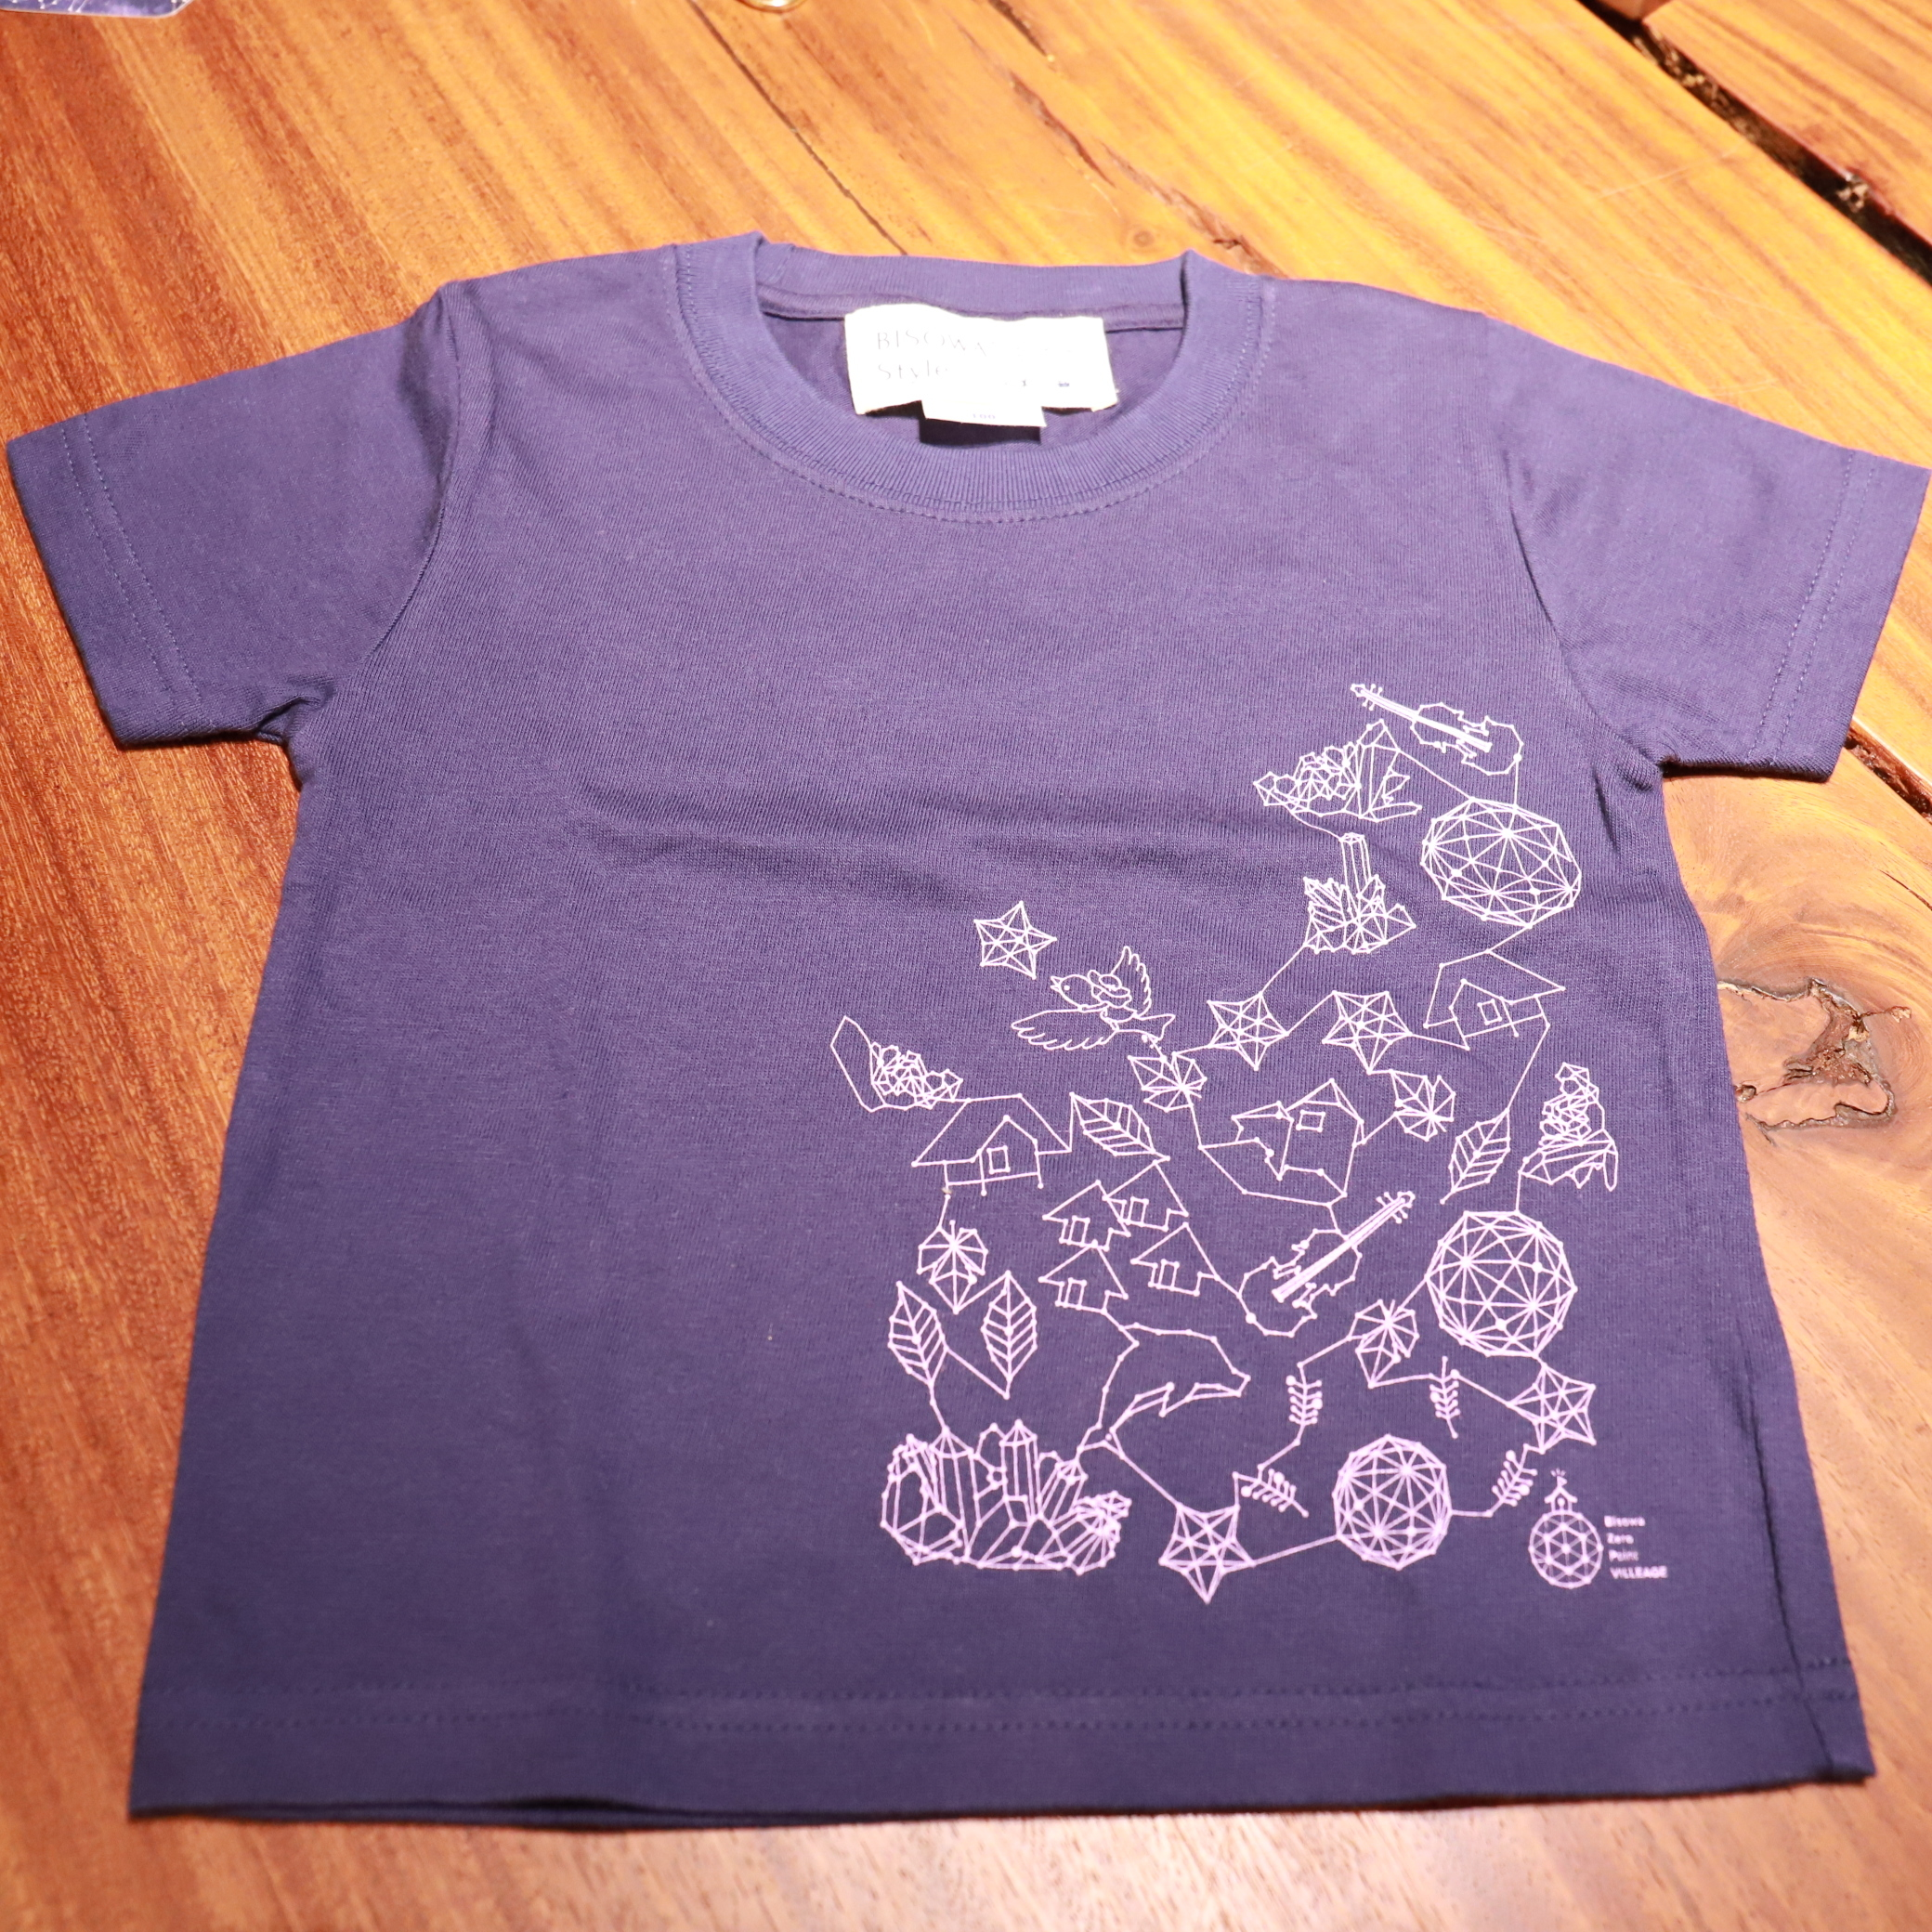 BISOWA T-SHIRT【KIDS】